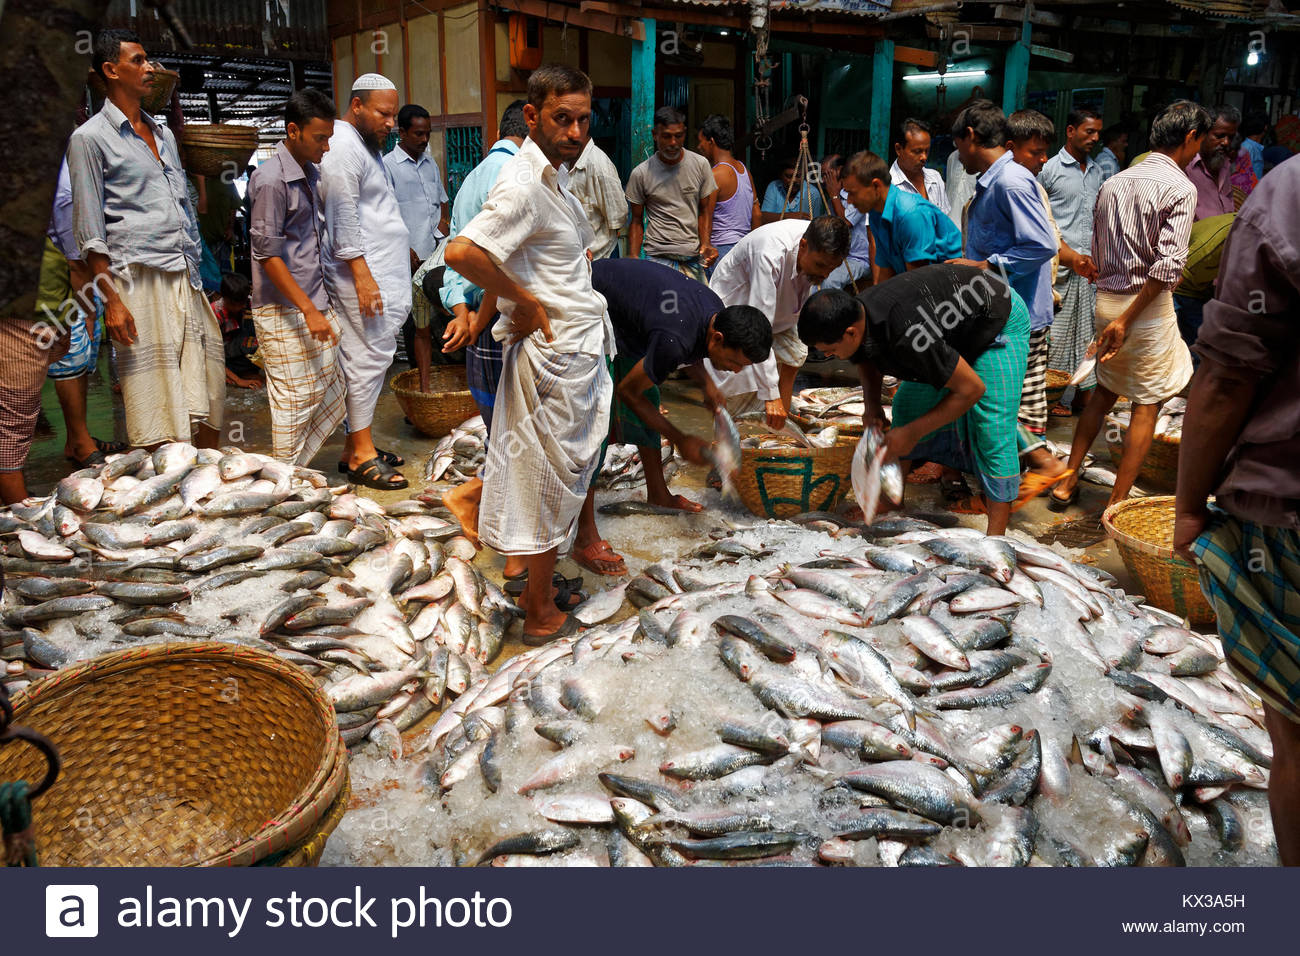 Largest Ilish fish market in Bangladesh, Chandpur, Chittagong, Bangladesh, South Asia, Asia - Stock Image